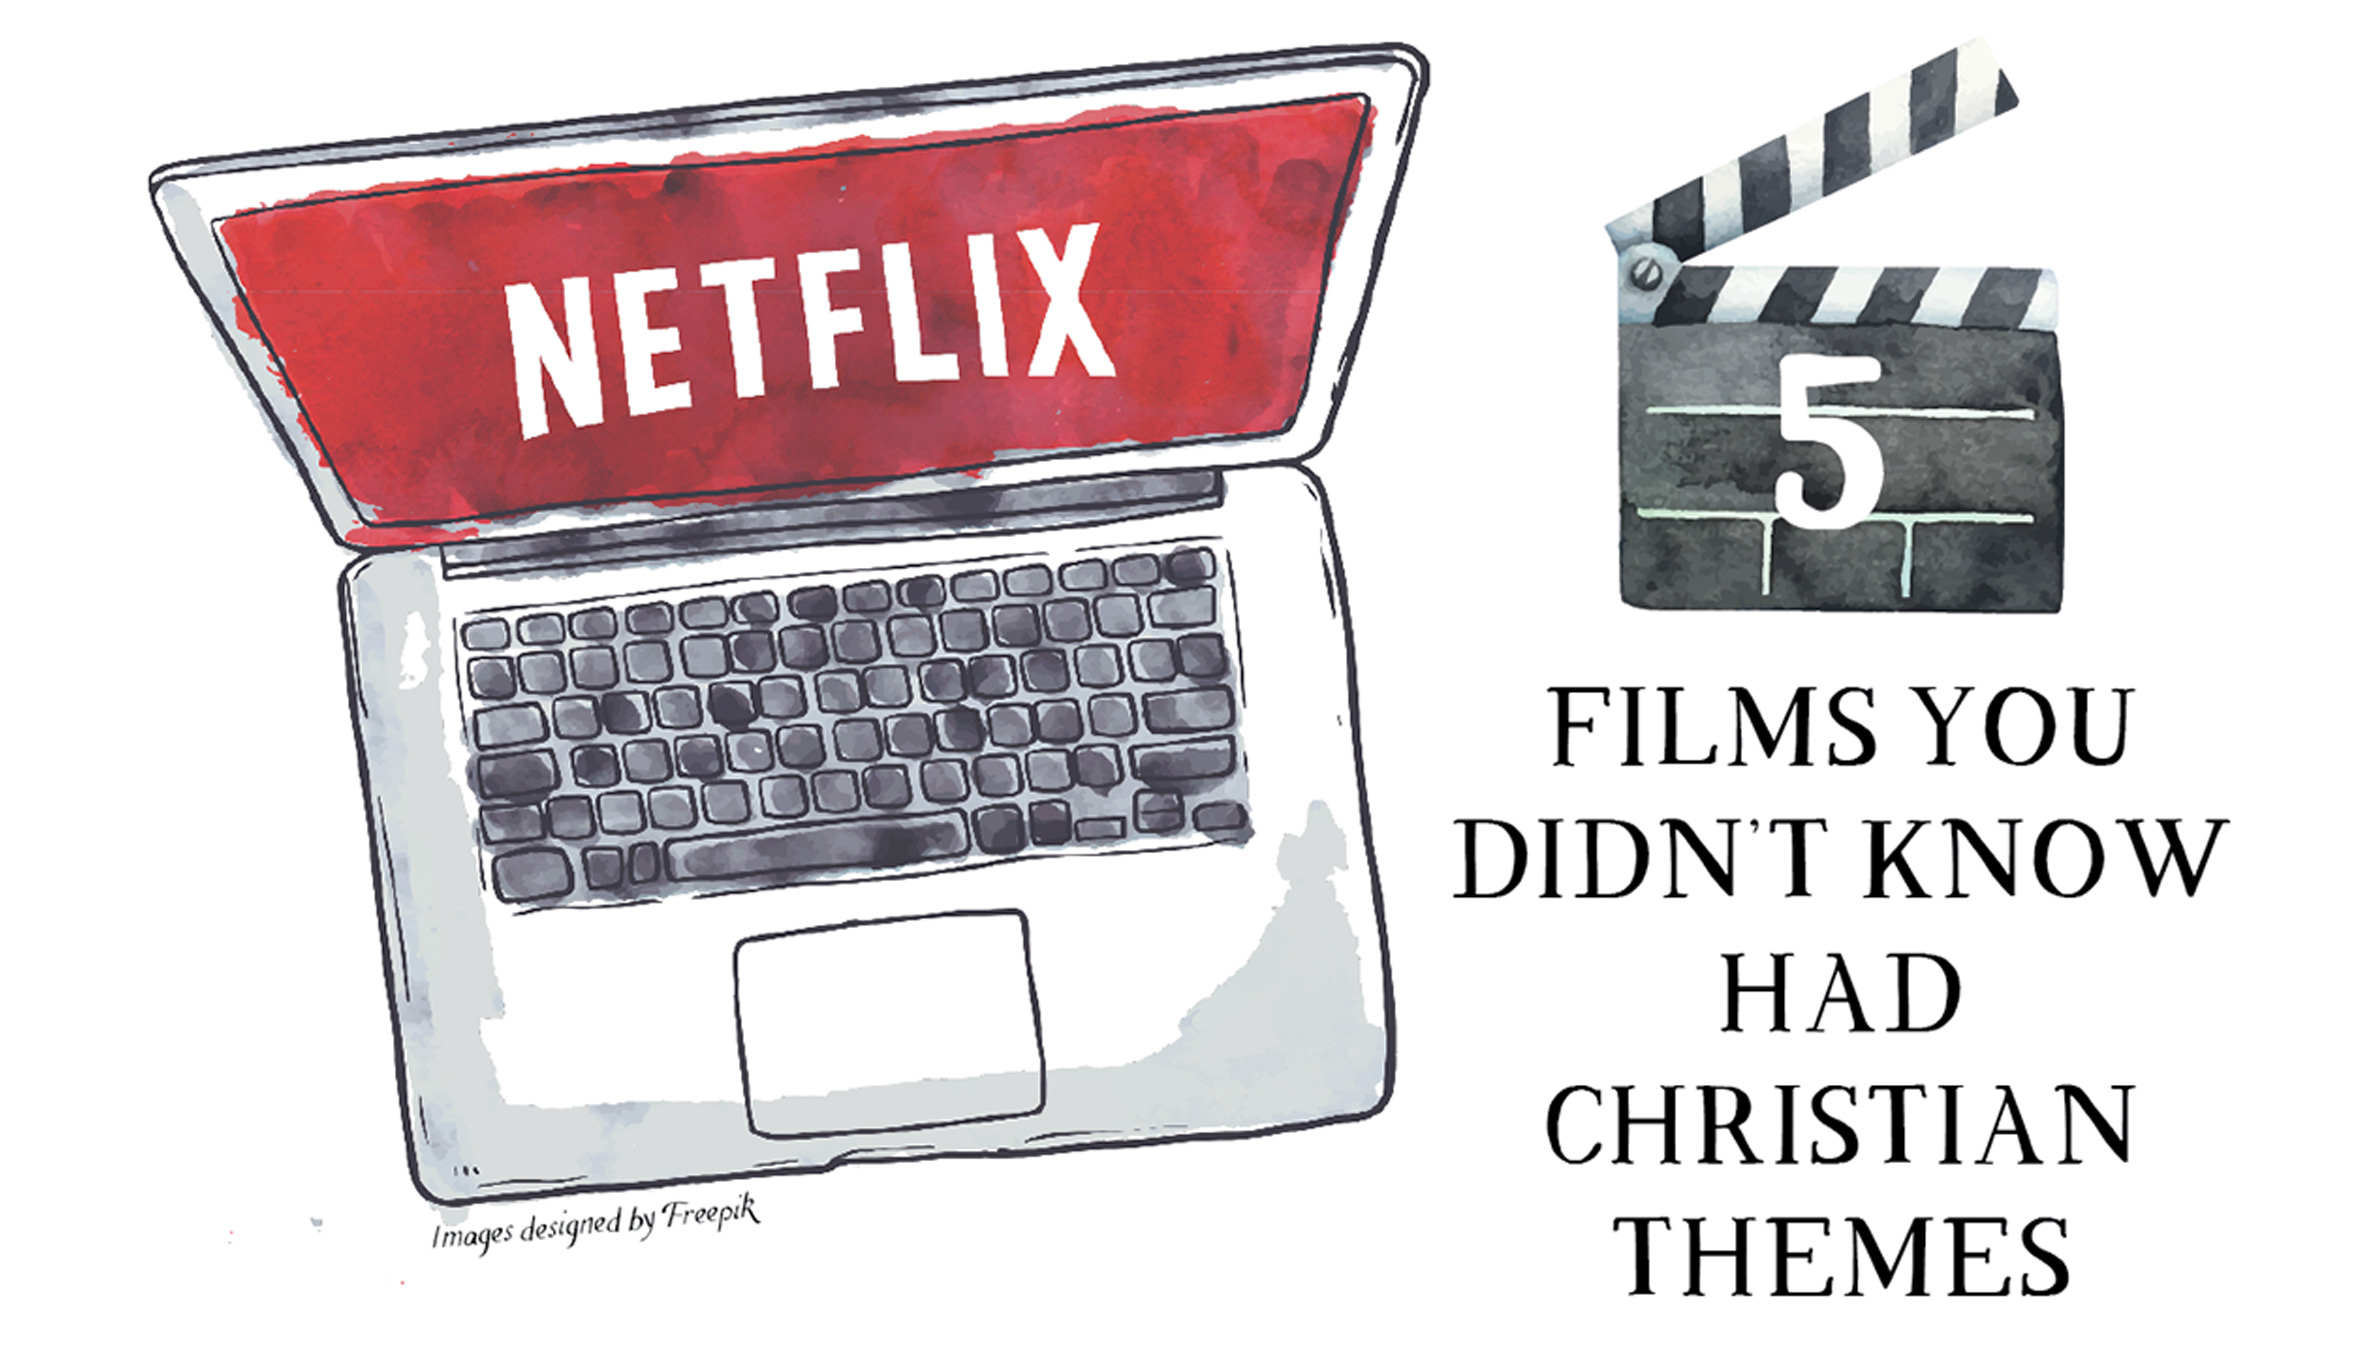 5 FILMS YOU DIDN'T KNOW HAD CHRISTIAN THEMES - New Identity Magazine